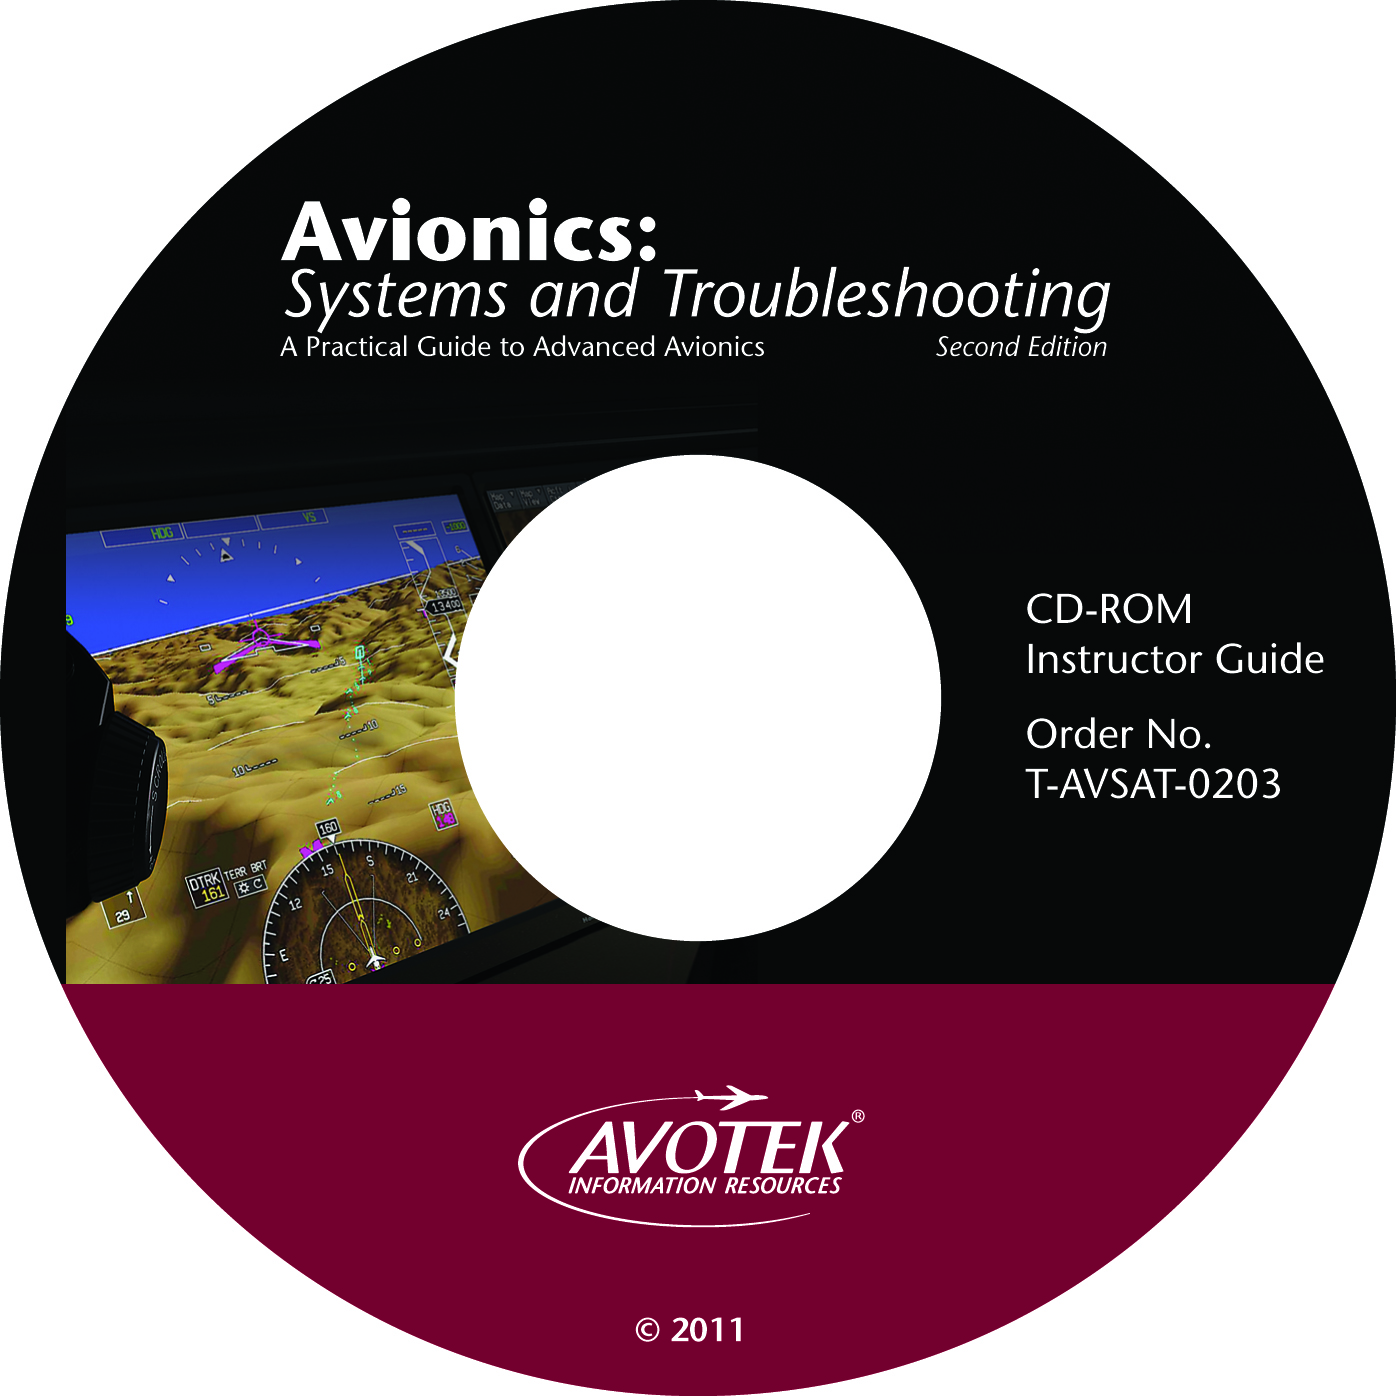 Avionics: Systems and Troubleshooting - Instructor Guide CD